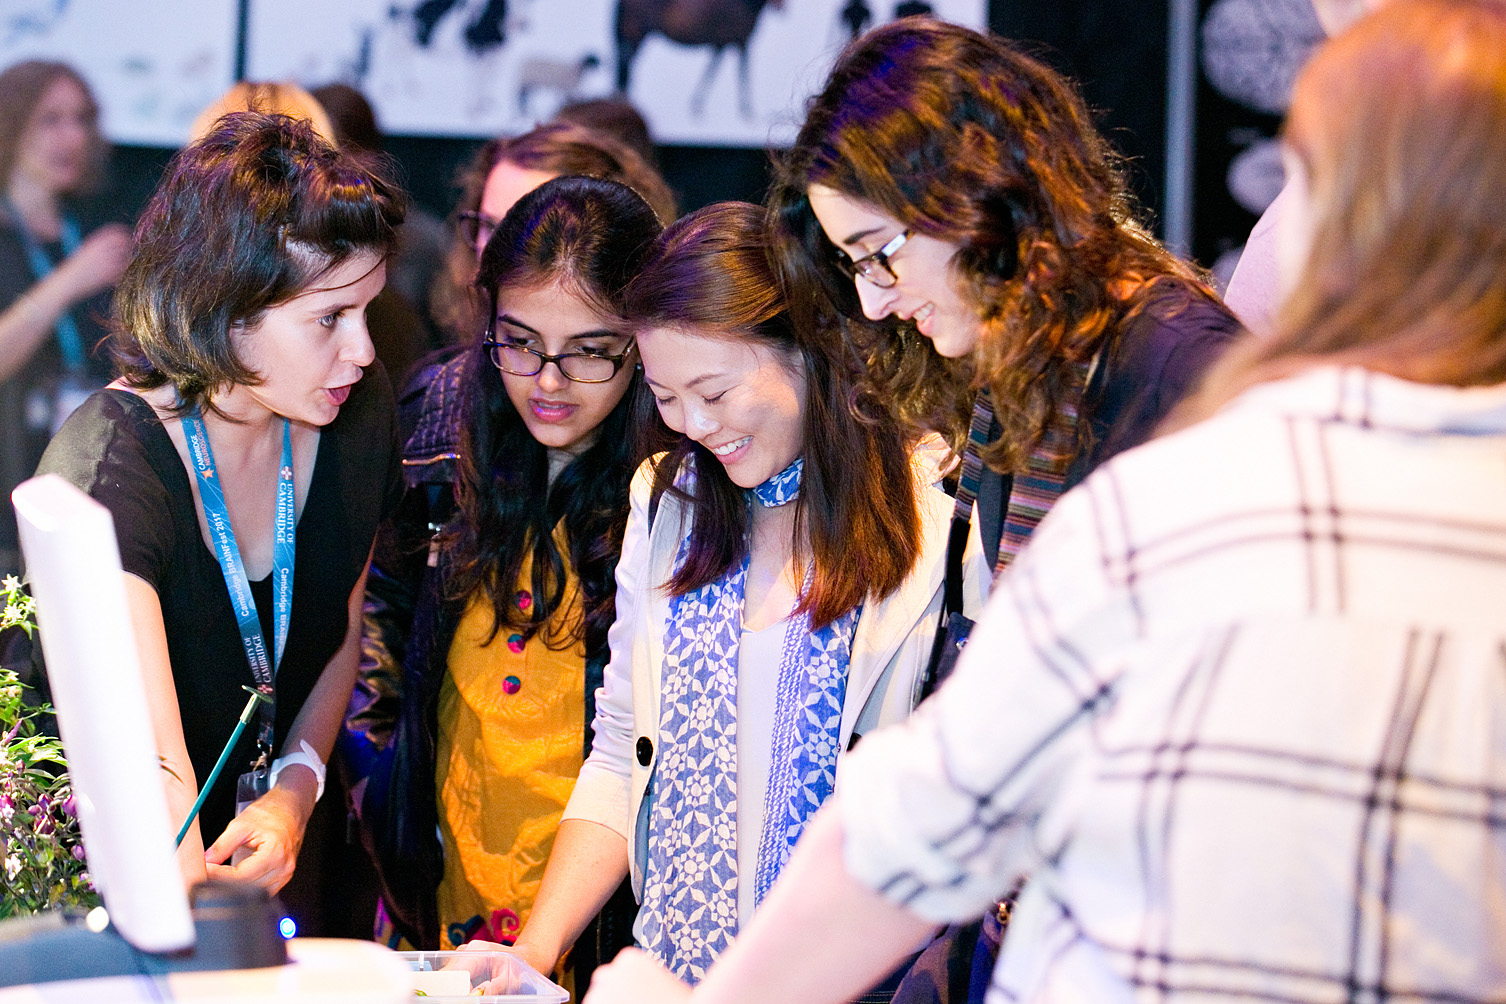 BRAINFest, the University of Cambridge Neuroscience festival of brain science, was an ambitious three day public event, bringing together more than 170 neuroscientists and 3000 visitors...